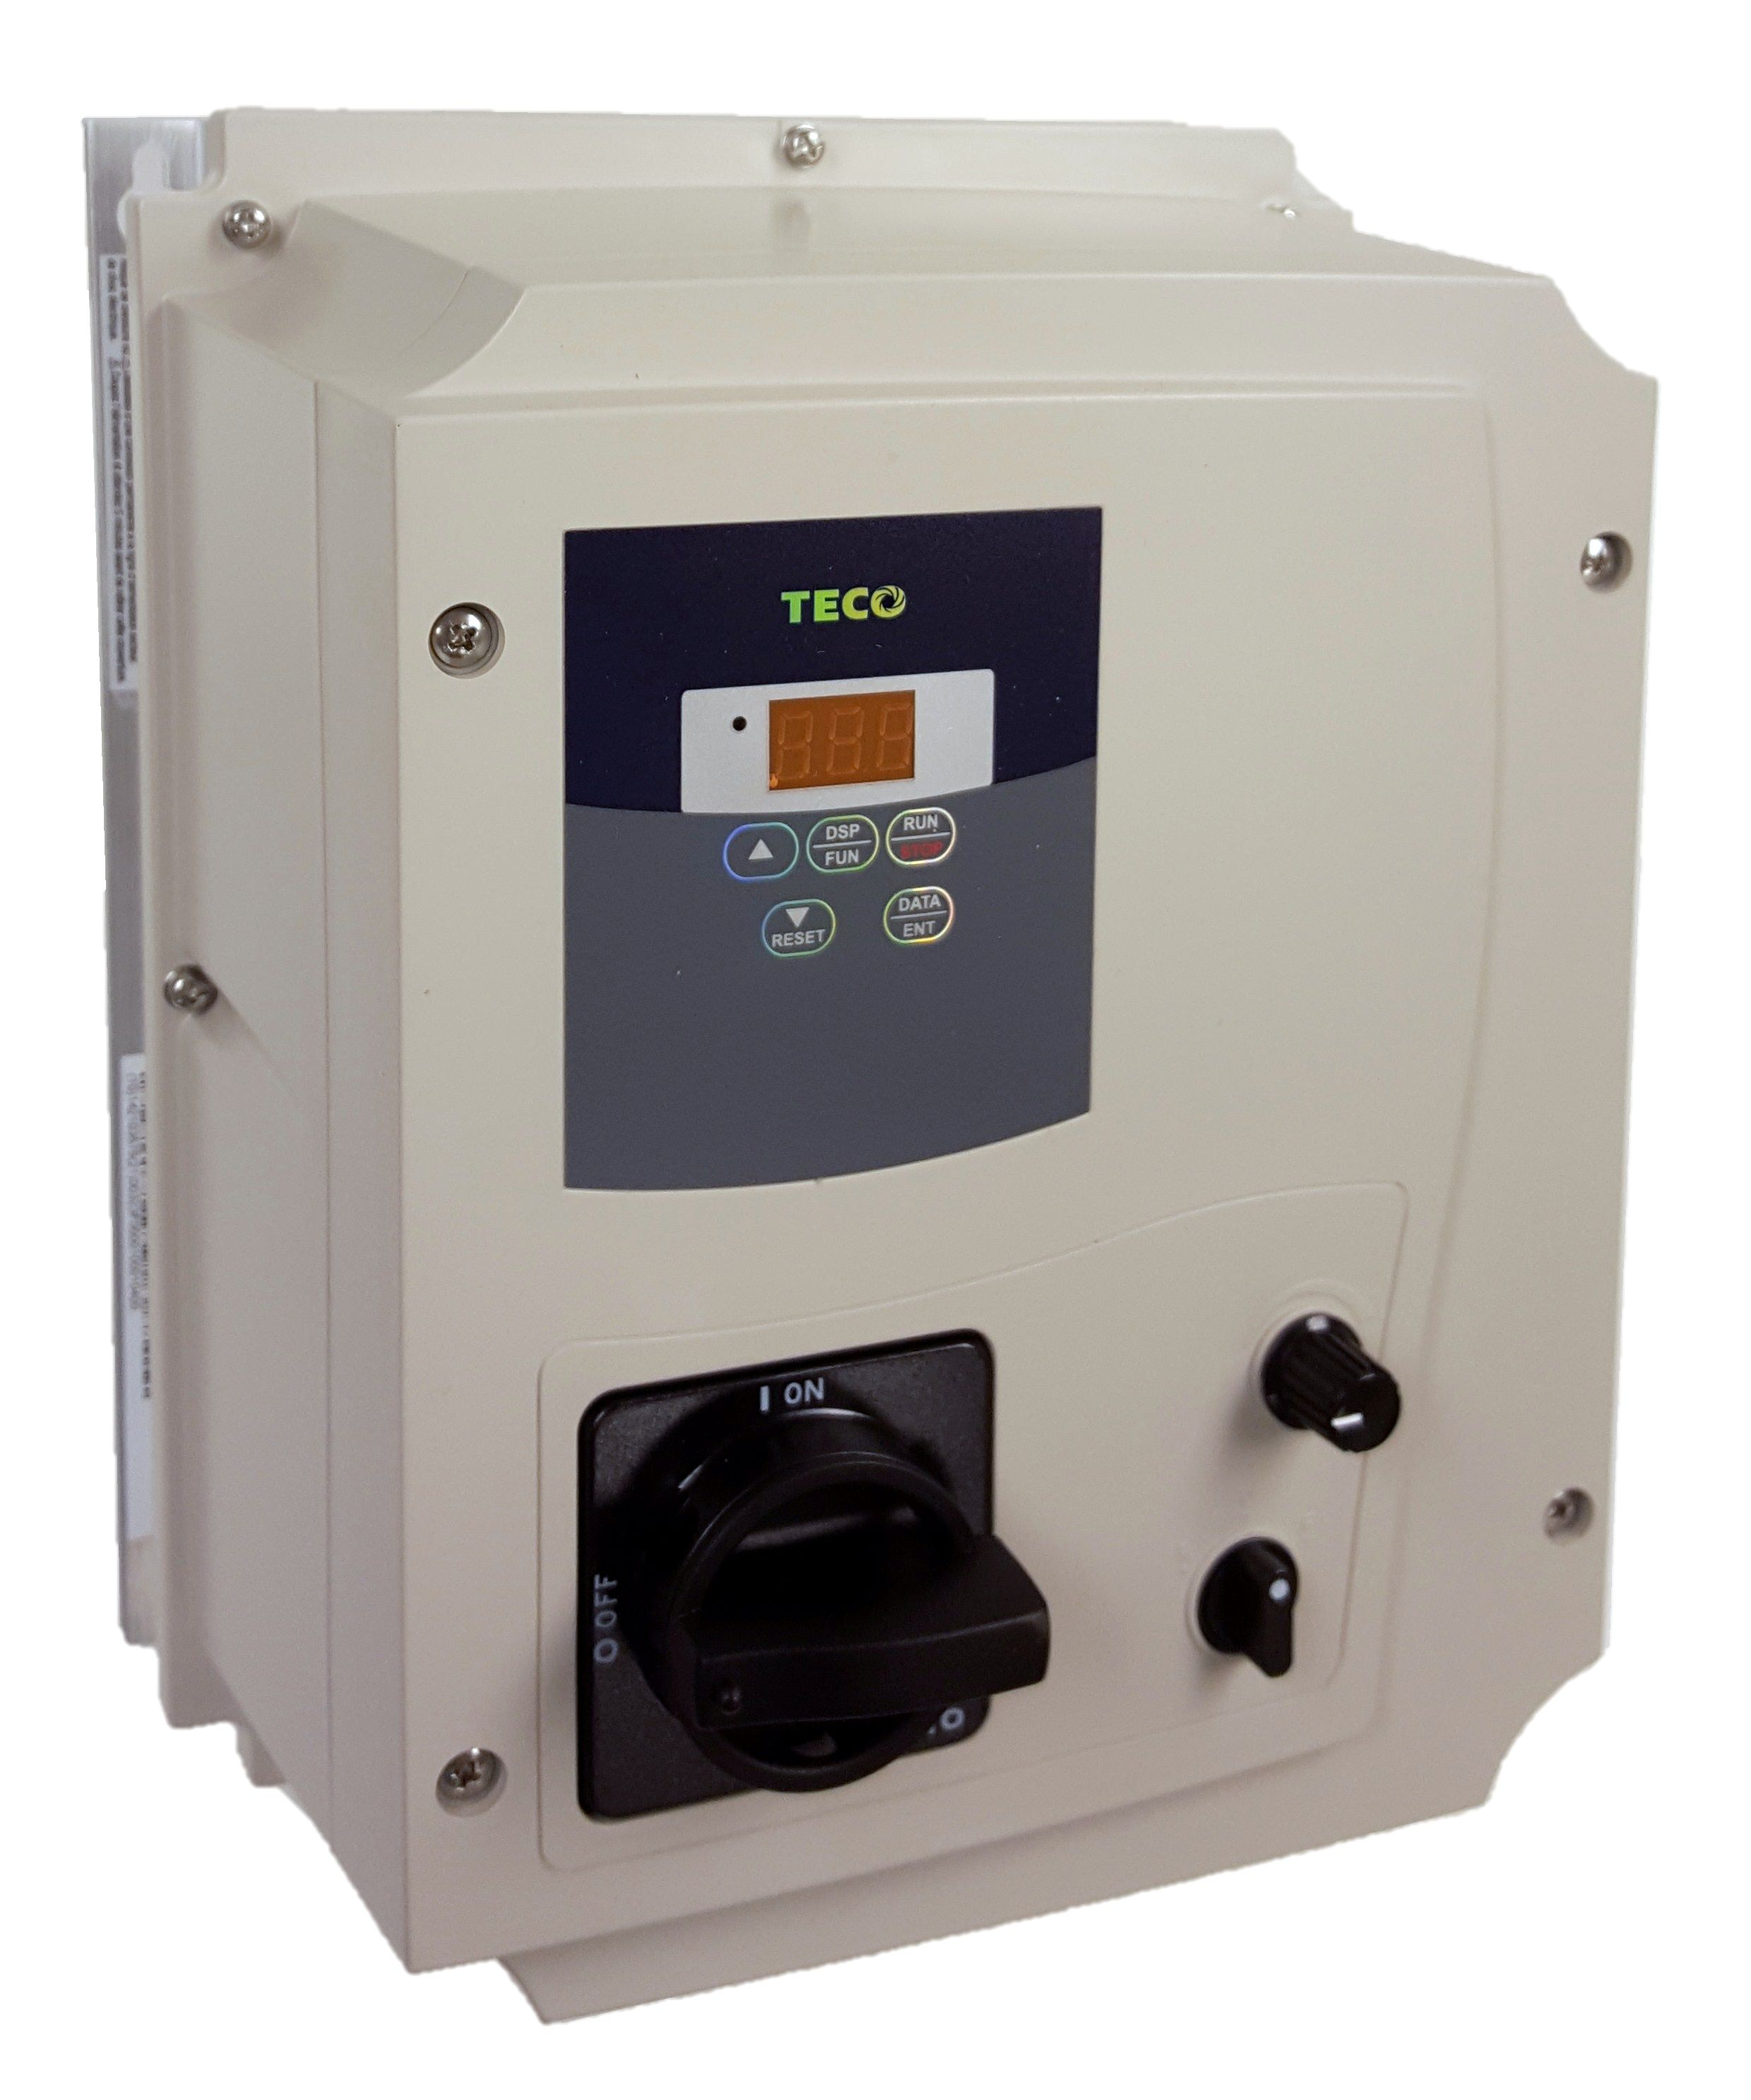 Teco westinghouse 3 hp 3600 rpm 230 volts input stainless for Teco westinghouse motor catalog